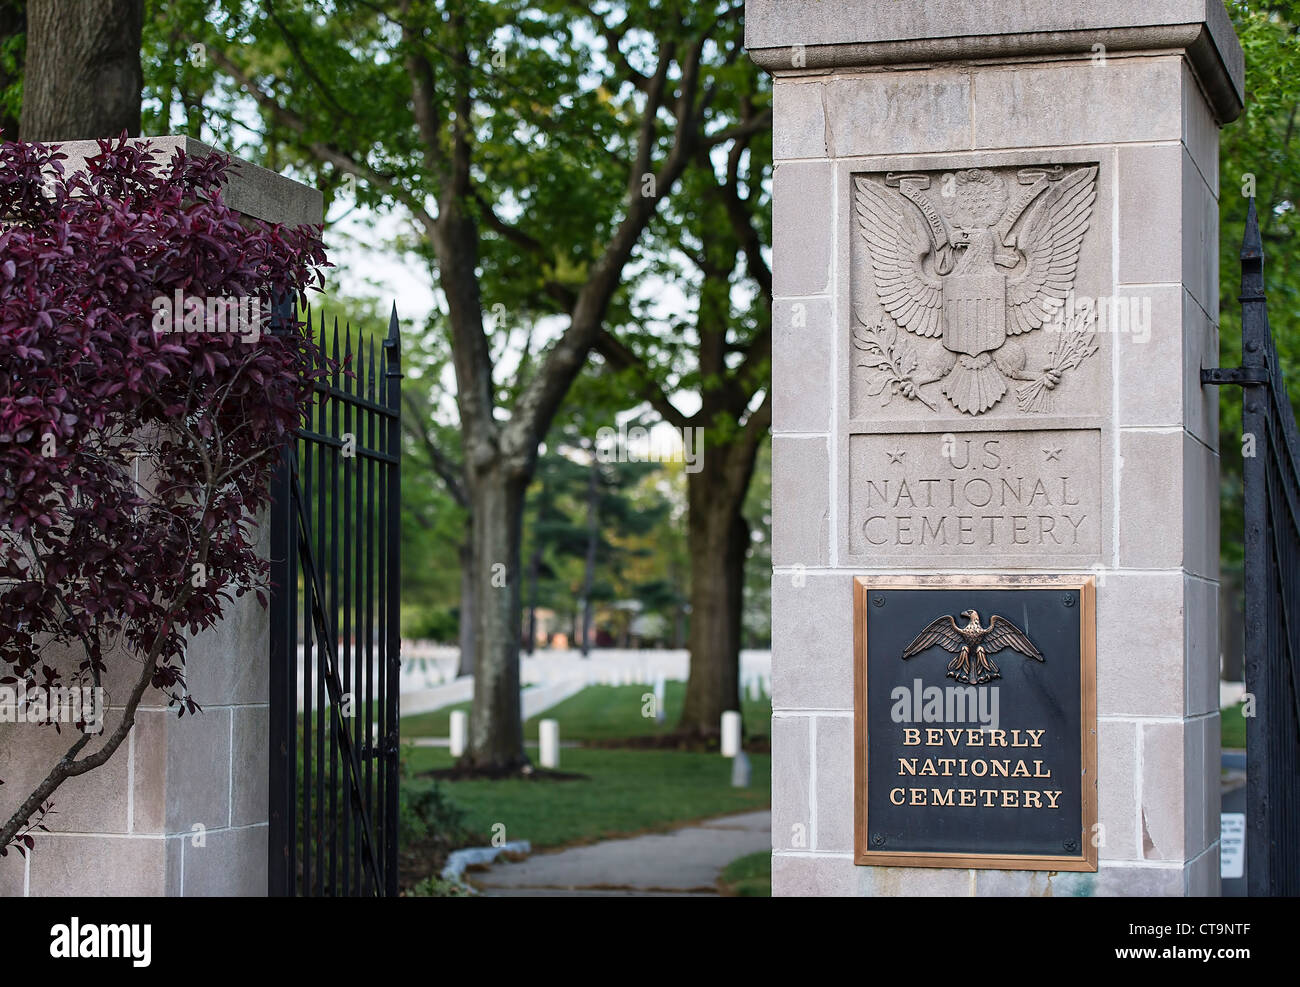 Beverly National Cemetery, Beverly, New Jersey - Stock Image